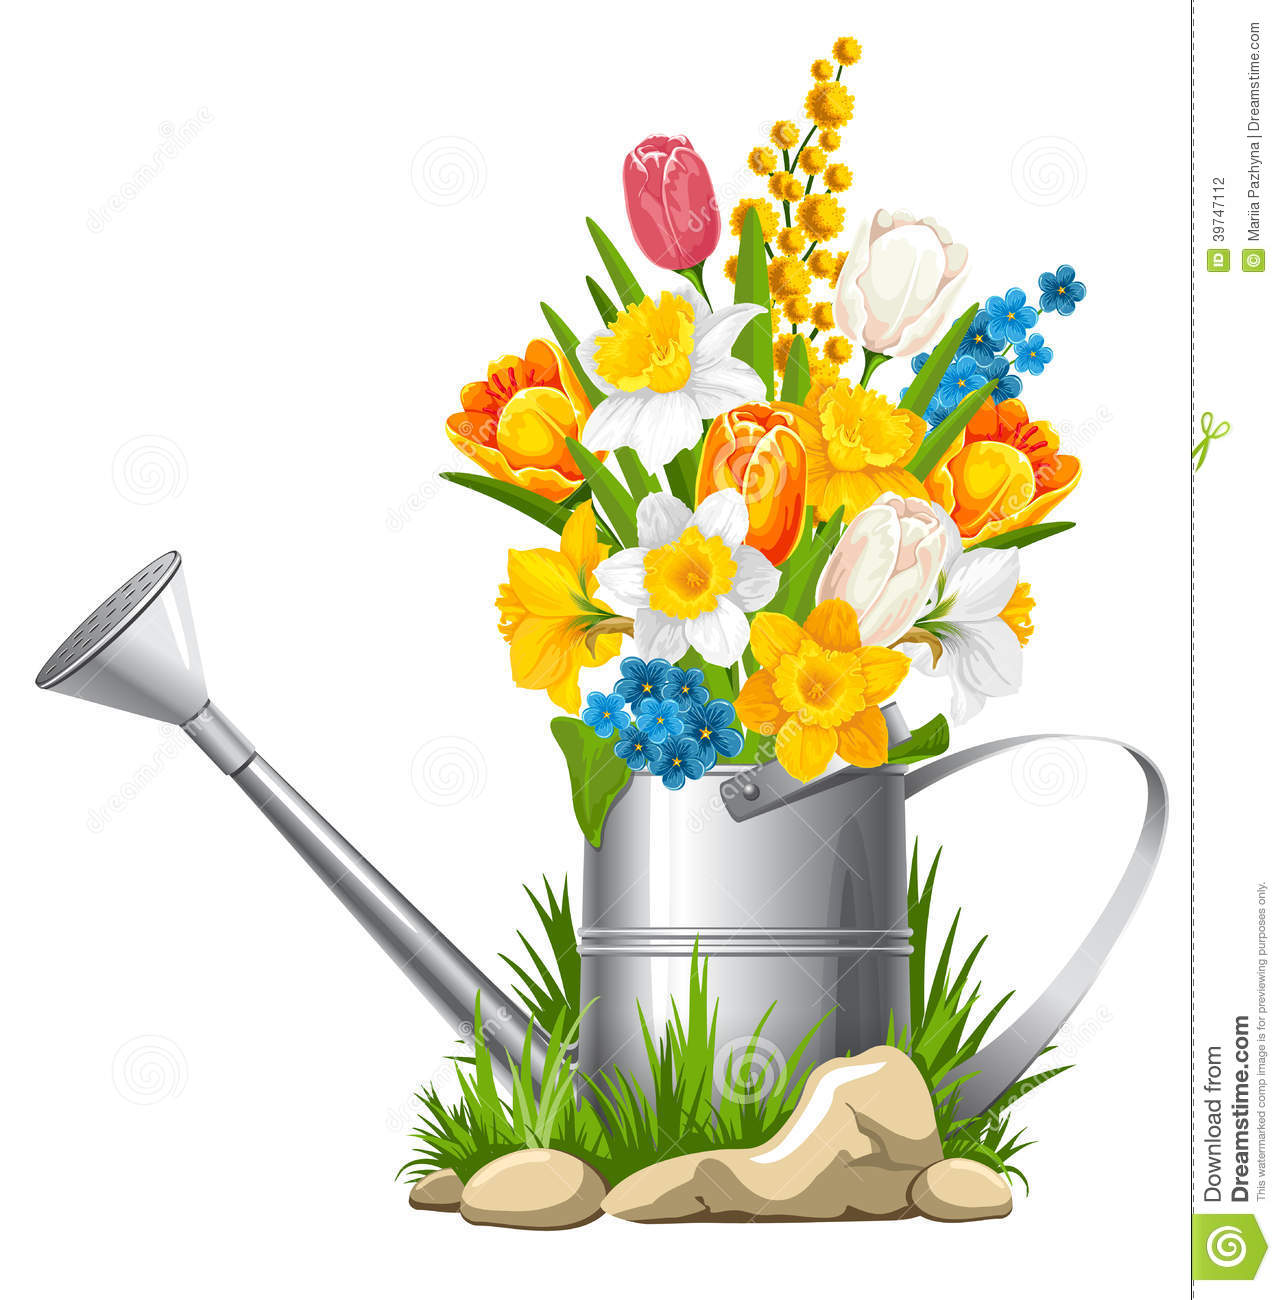 Flowers in watering can stock vector. Image of care ...